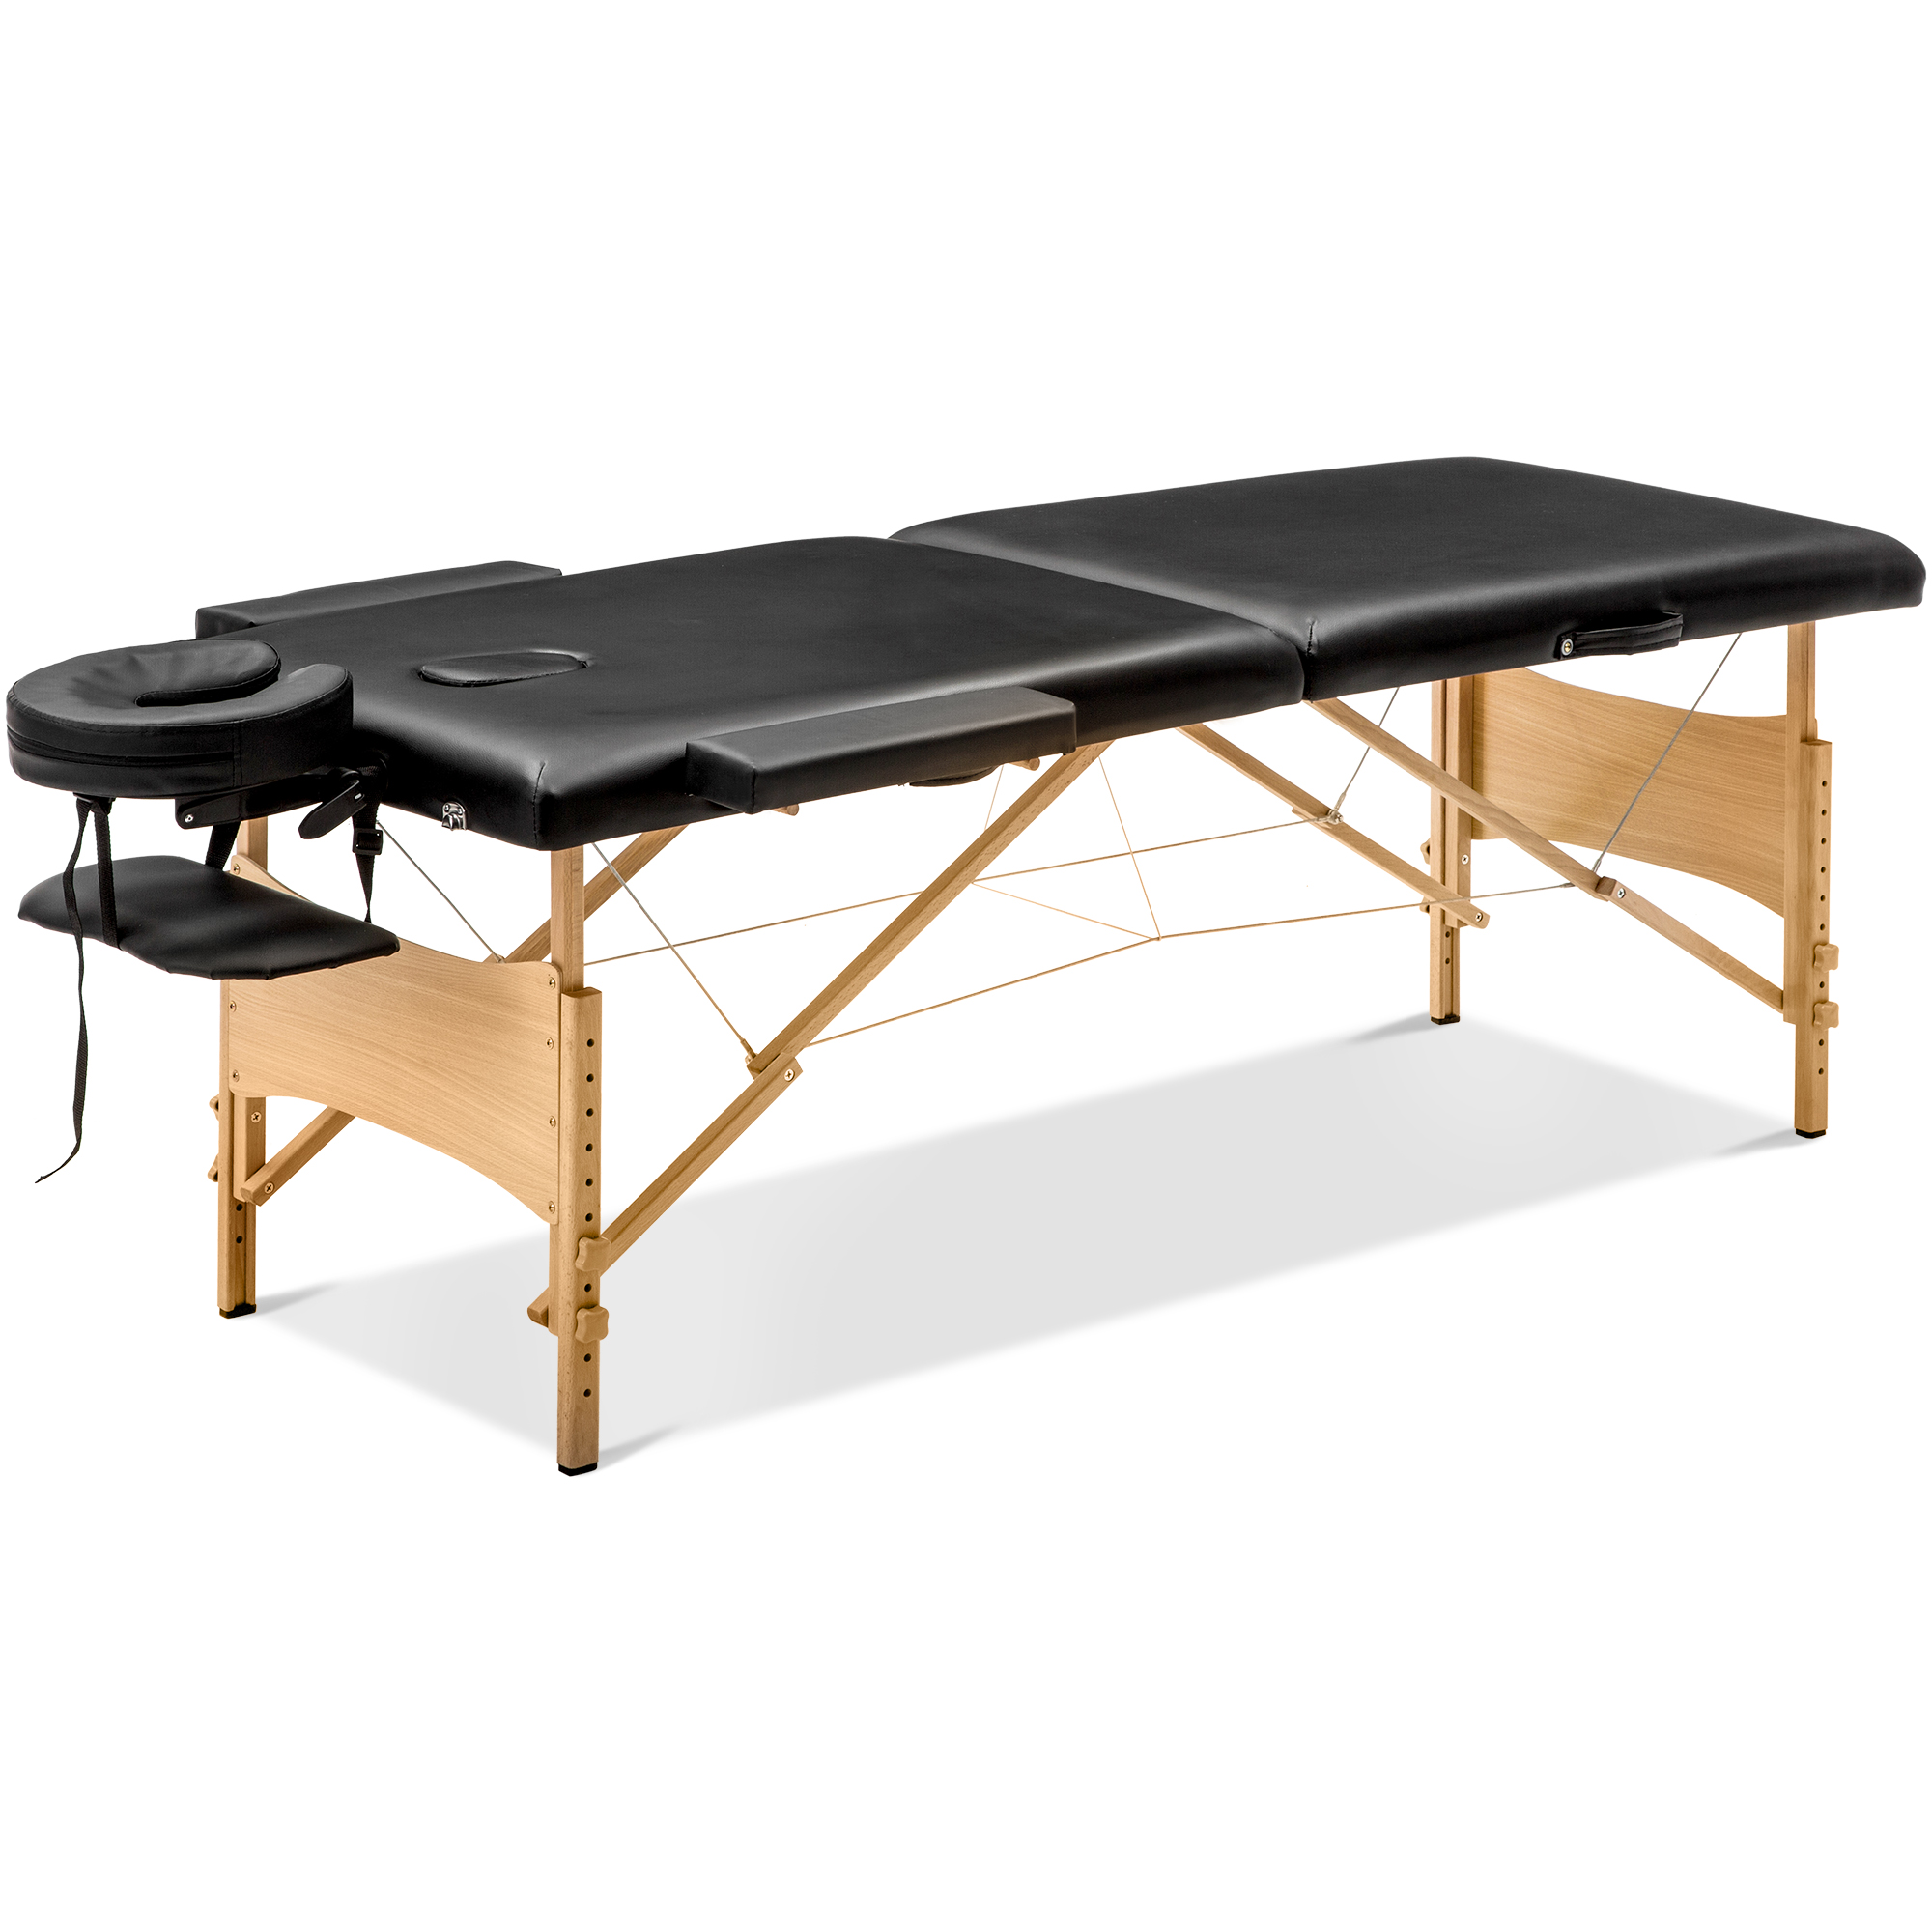 Black Portable Massage Table Free Carry Case  Wooden 2 Section Right Angle Folding Massage Table Camillas Para Masajes Plegable